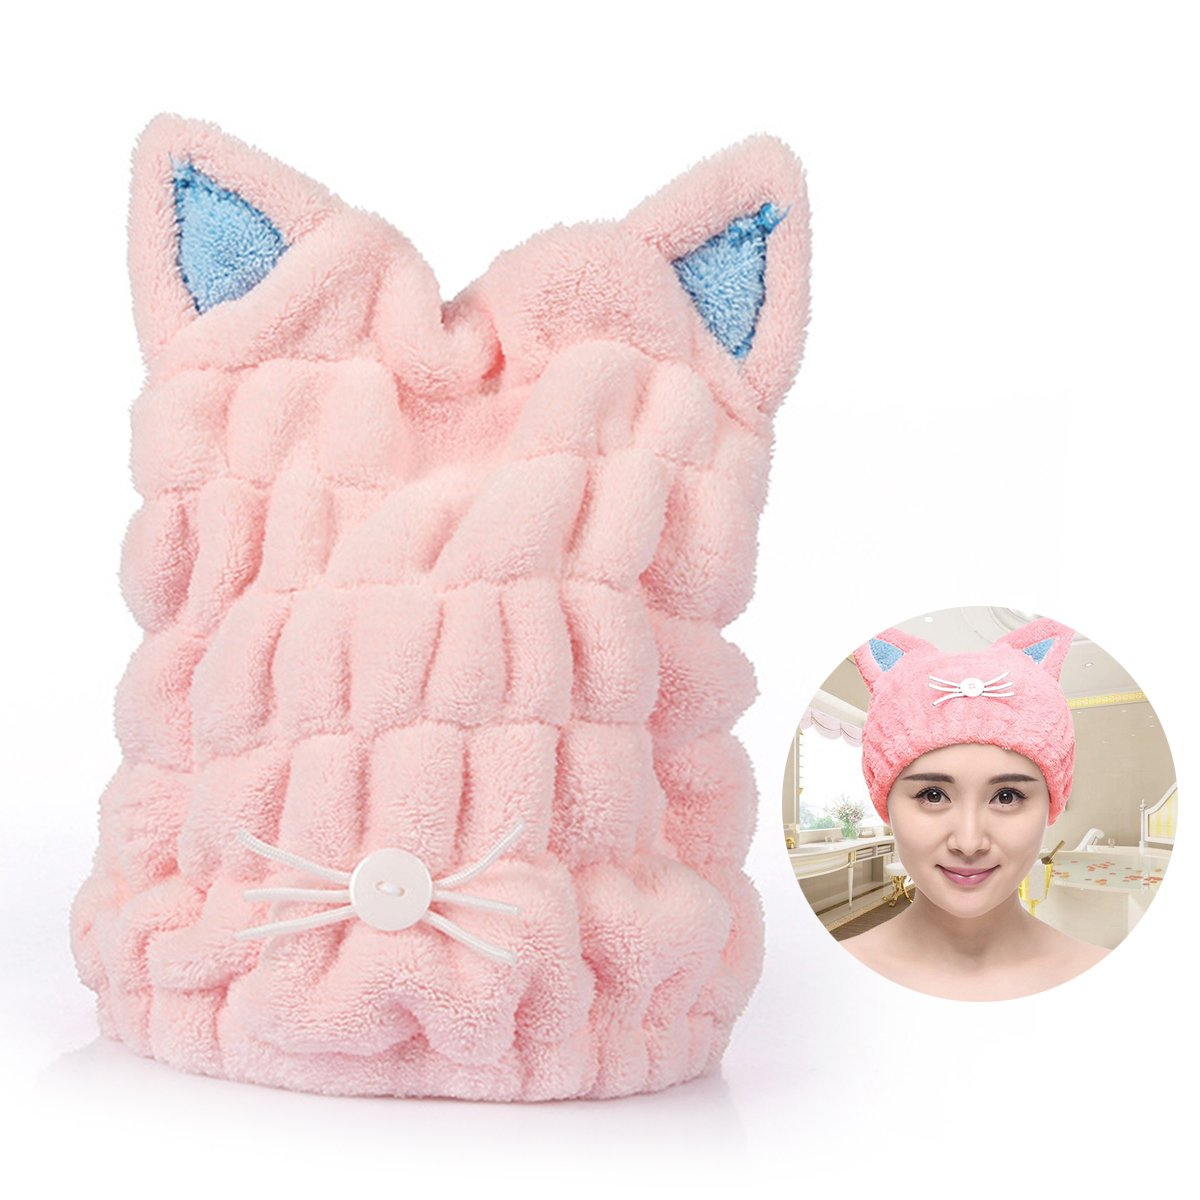 Soft Microfiber Cute Cat Ear Hair Drying Cap Super Absorbent Quick Drying Hair Towel Wrap With Coral Fleece For Womens Girls Ladies Bath Accessories (Blue) Suces